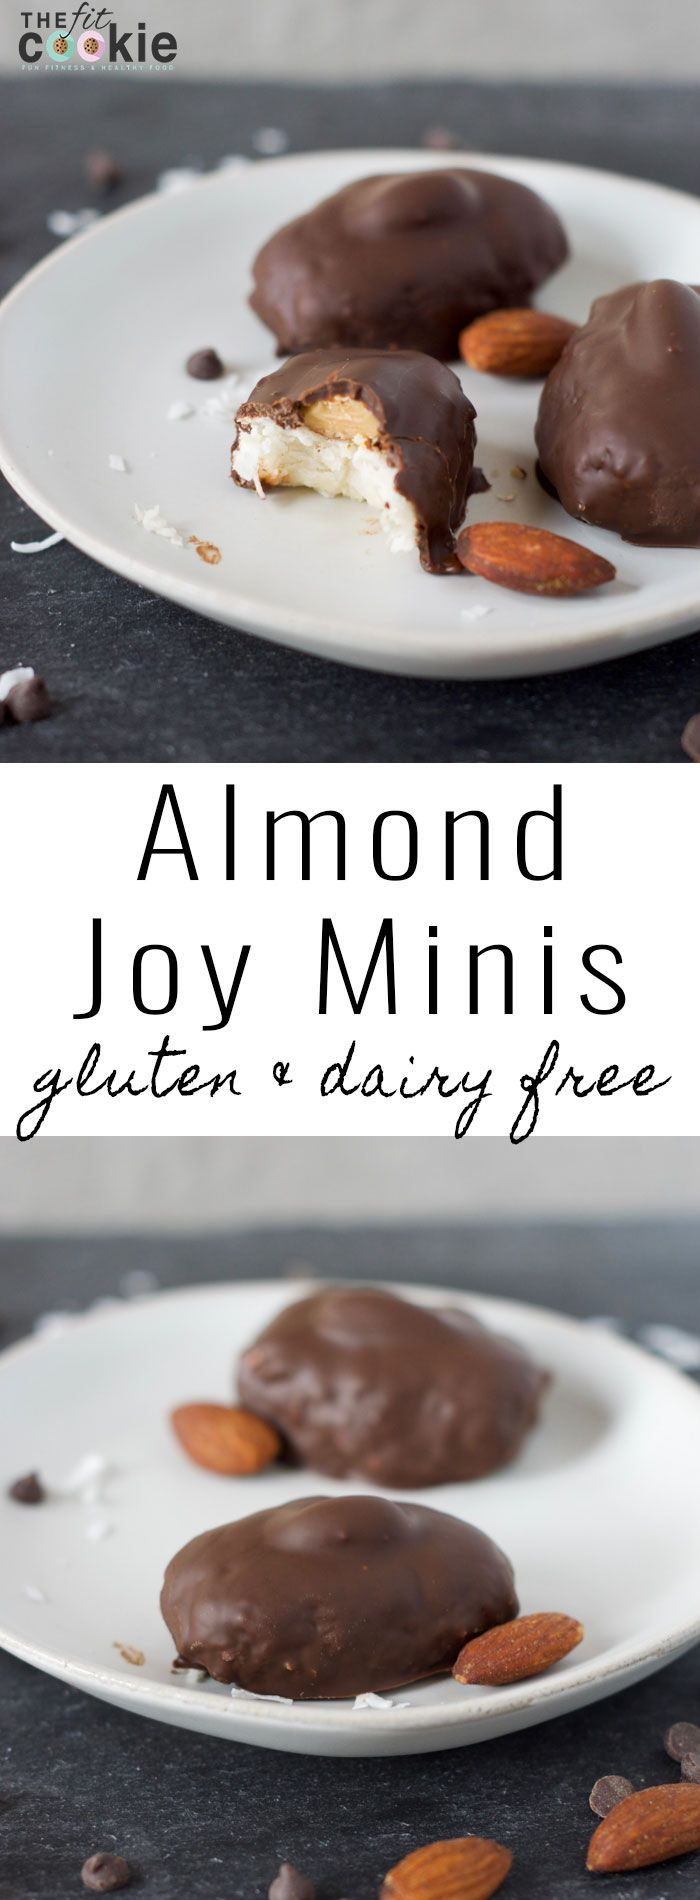 If you love candy bars, make some healthier ones at home! These Almond Joy and Mounds Minis are perfect: they are easy to make, dairy free, gluten free, and grain free - @TheFitCookie #grainfree #glutenfree #dairyfree